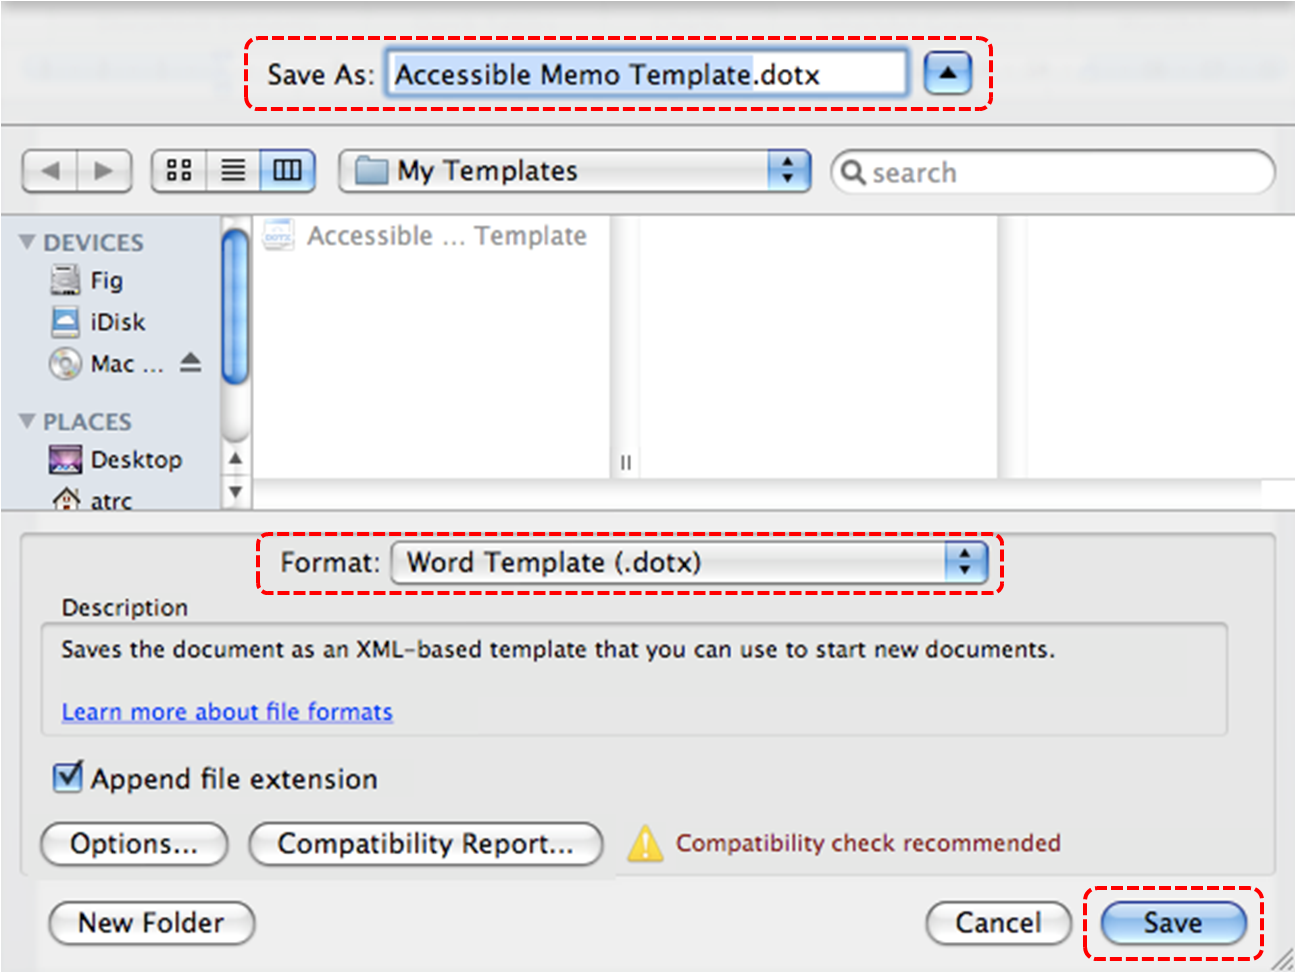 Image demonstrates location of Save As box, Format drop-down list and Save button in Save As dialog.